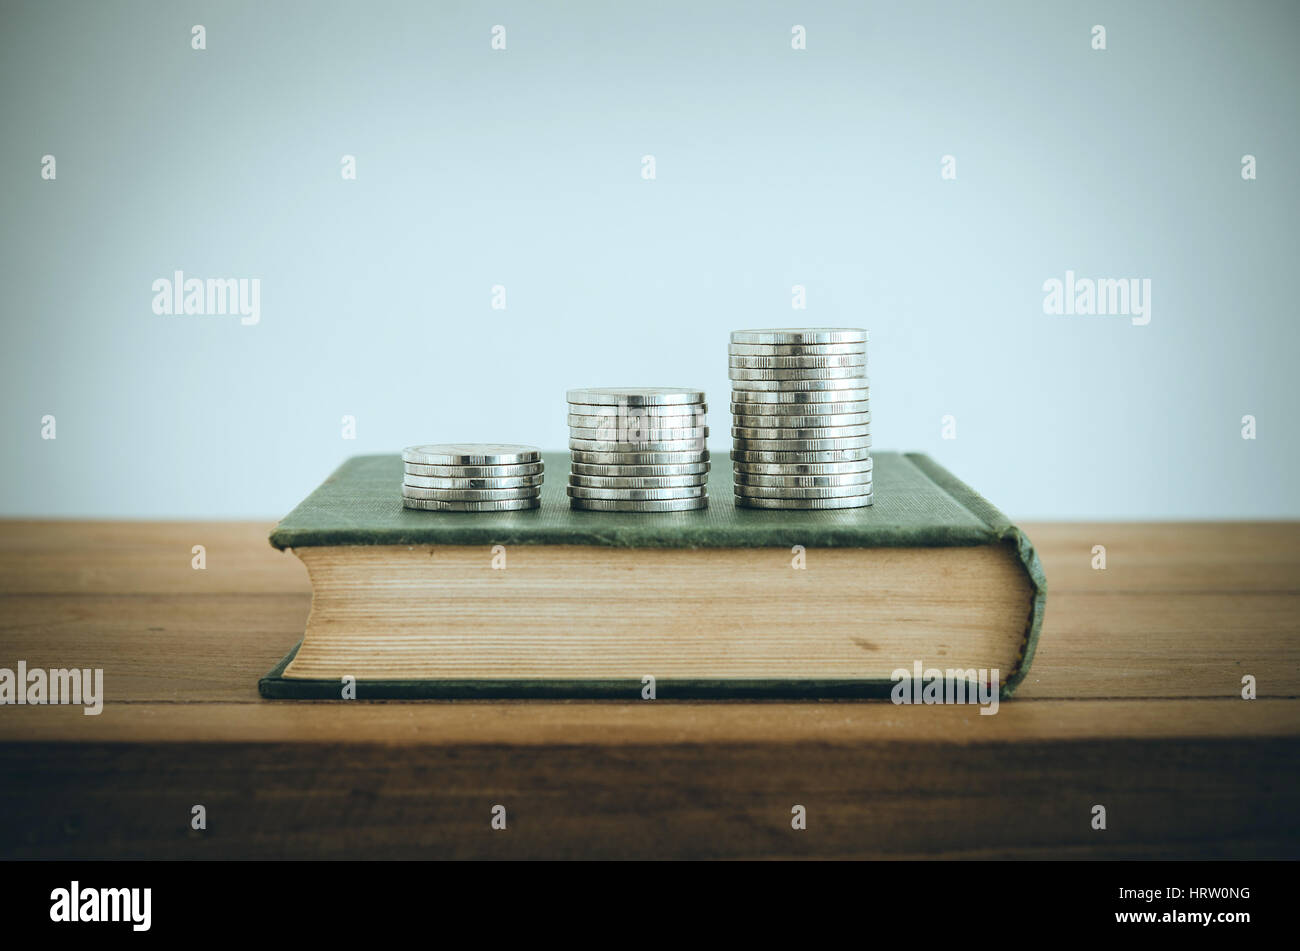 Money, Financial, Business Growth concept, Coin stacks on old book. Vintage filter. - Stock Image